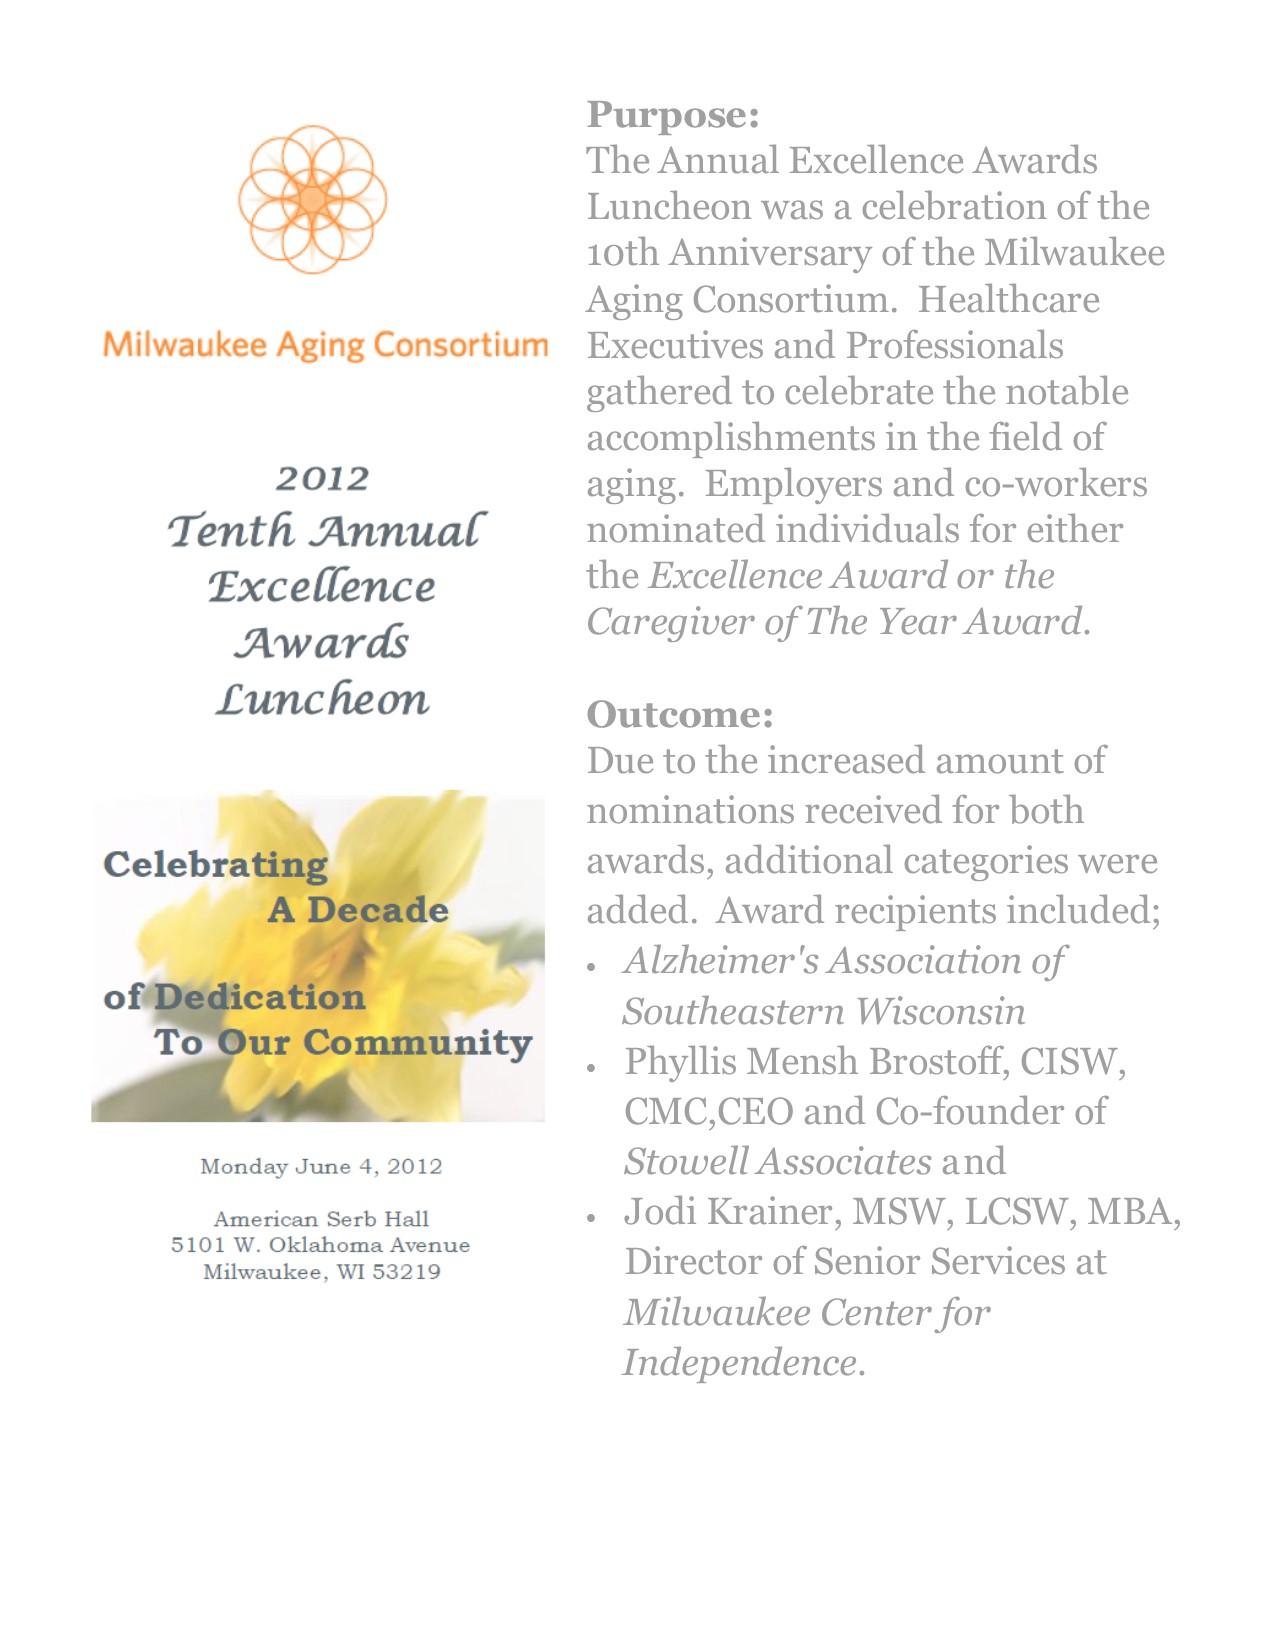 2012 Tenth Annual Excellence Award